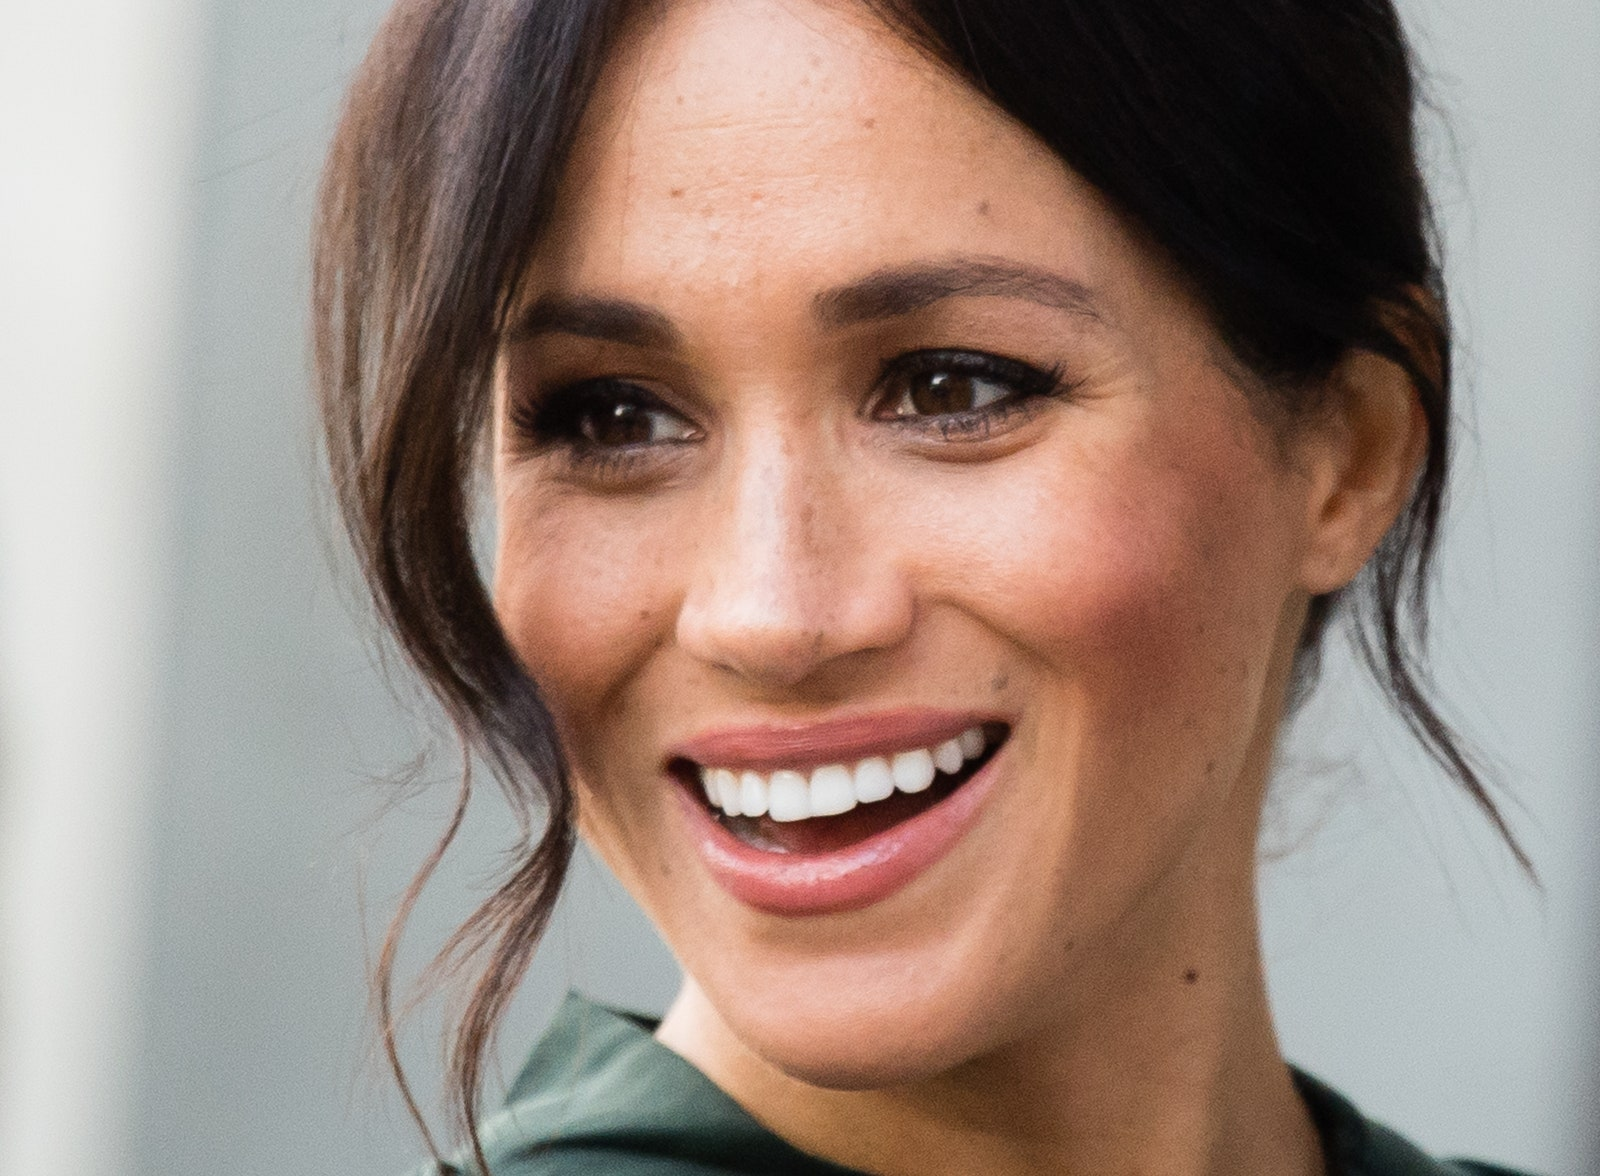 Meghan Markle's Been Using a Genius Makeup Trick That Nobody Noticed